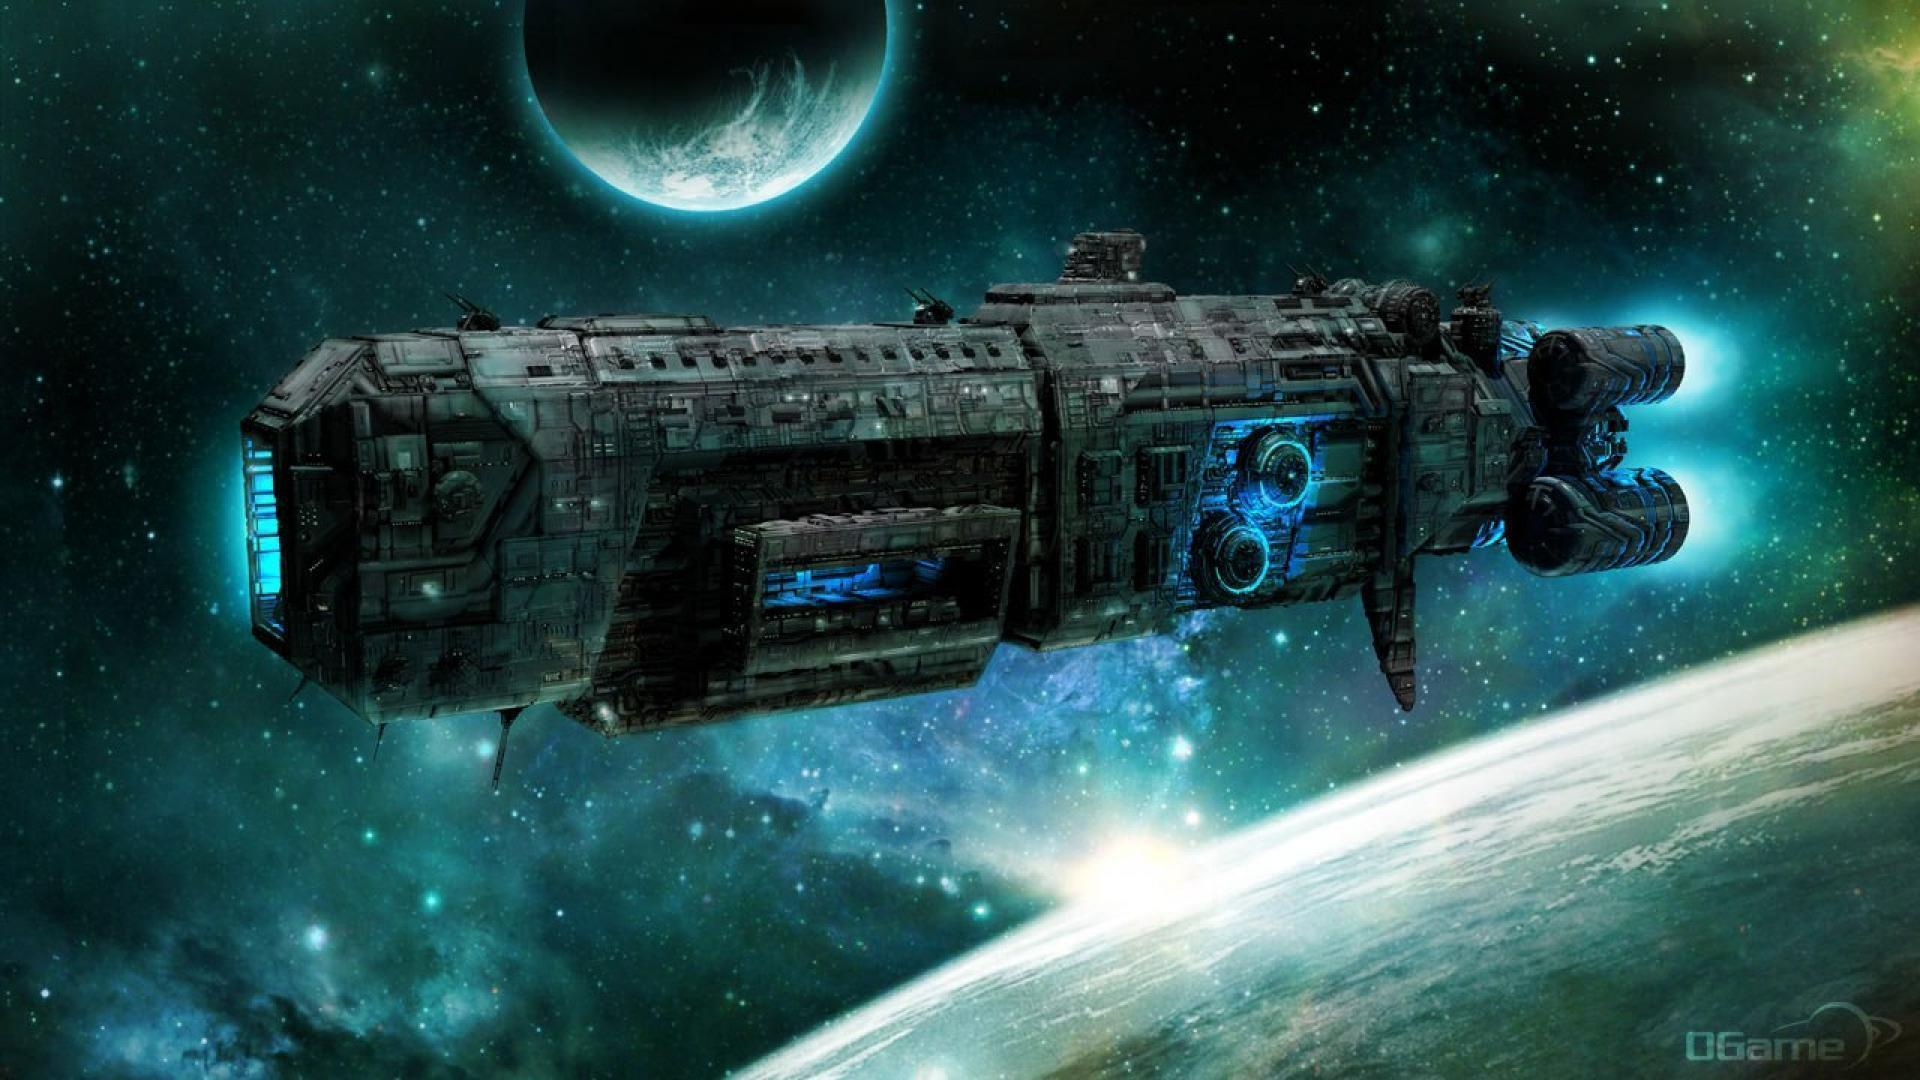 Space Ship Wallpapers 1920x1080